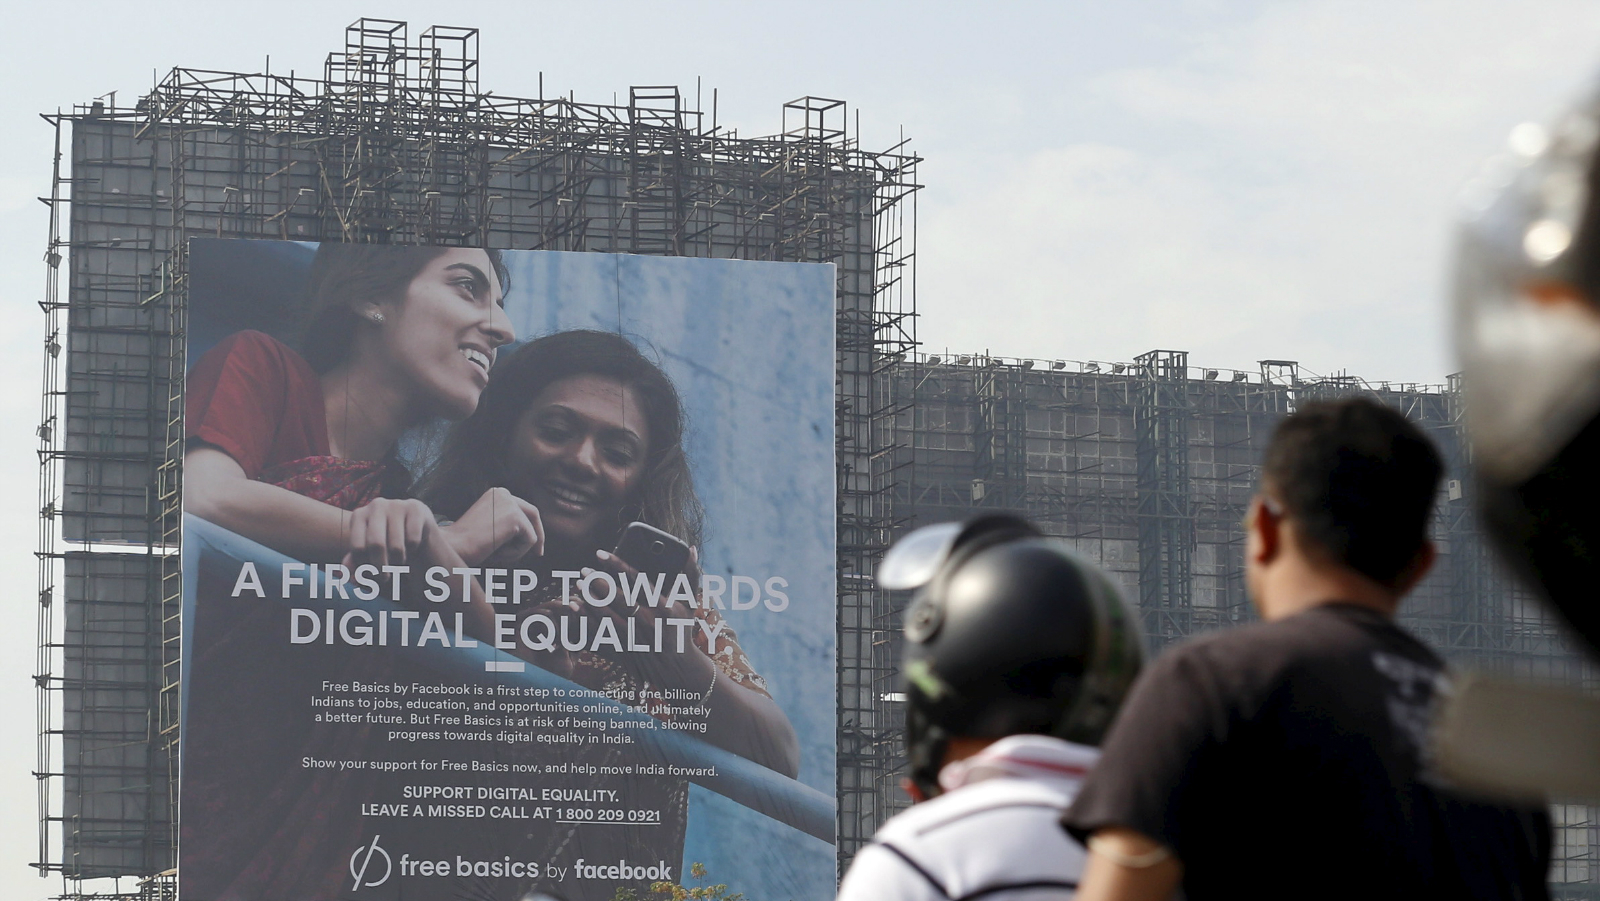 Motorists ride past a billboard displaying Facebook's Free Basics initiative in Mumbai, India, December 30, 2015. India has become a battleground over the right to unrestricted Internet access, with local tech start-ups joining the front line against Facebook Inc founder Mark Zuckerberg and his plan to roll out free Internet to the country's masses. The Indian government has ordered Facebook's Free Basics plan on hold while it decides what to do. Picture taken December 30, 2015.